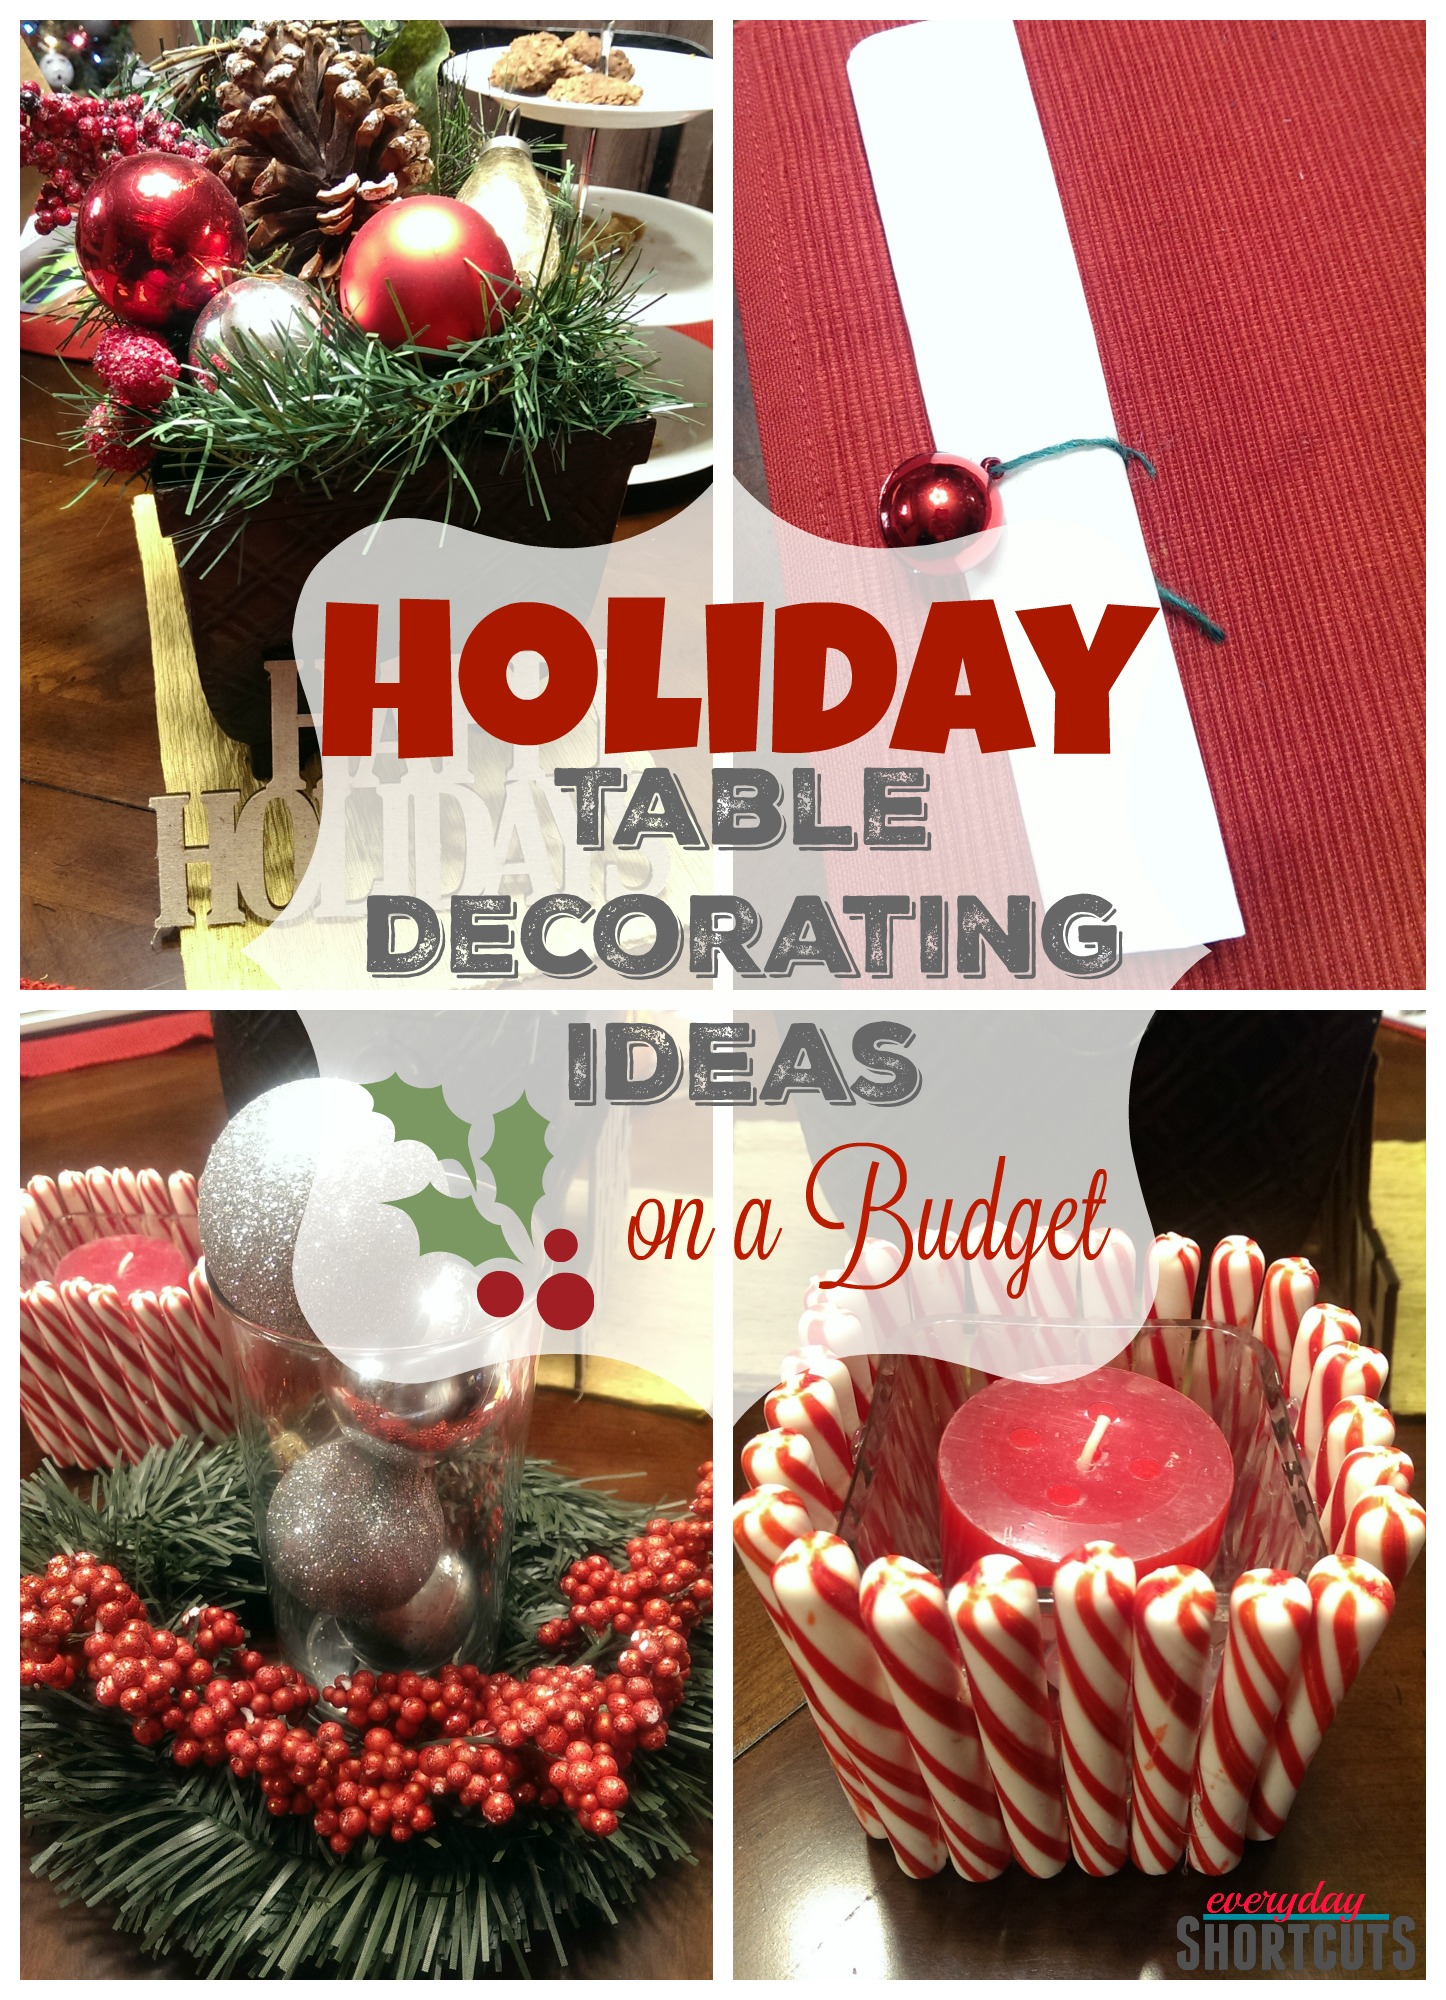 holiday table decorating ideas on a budget